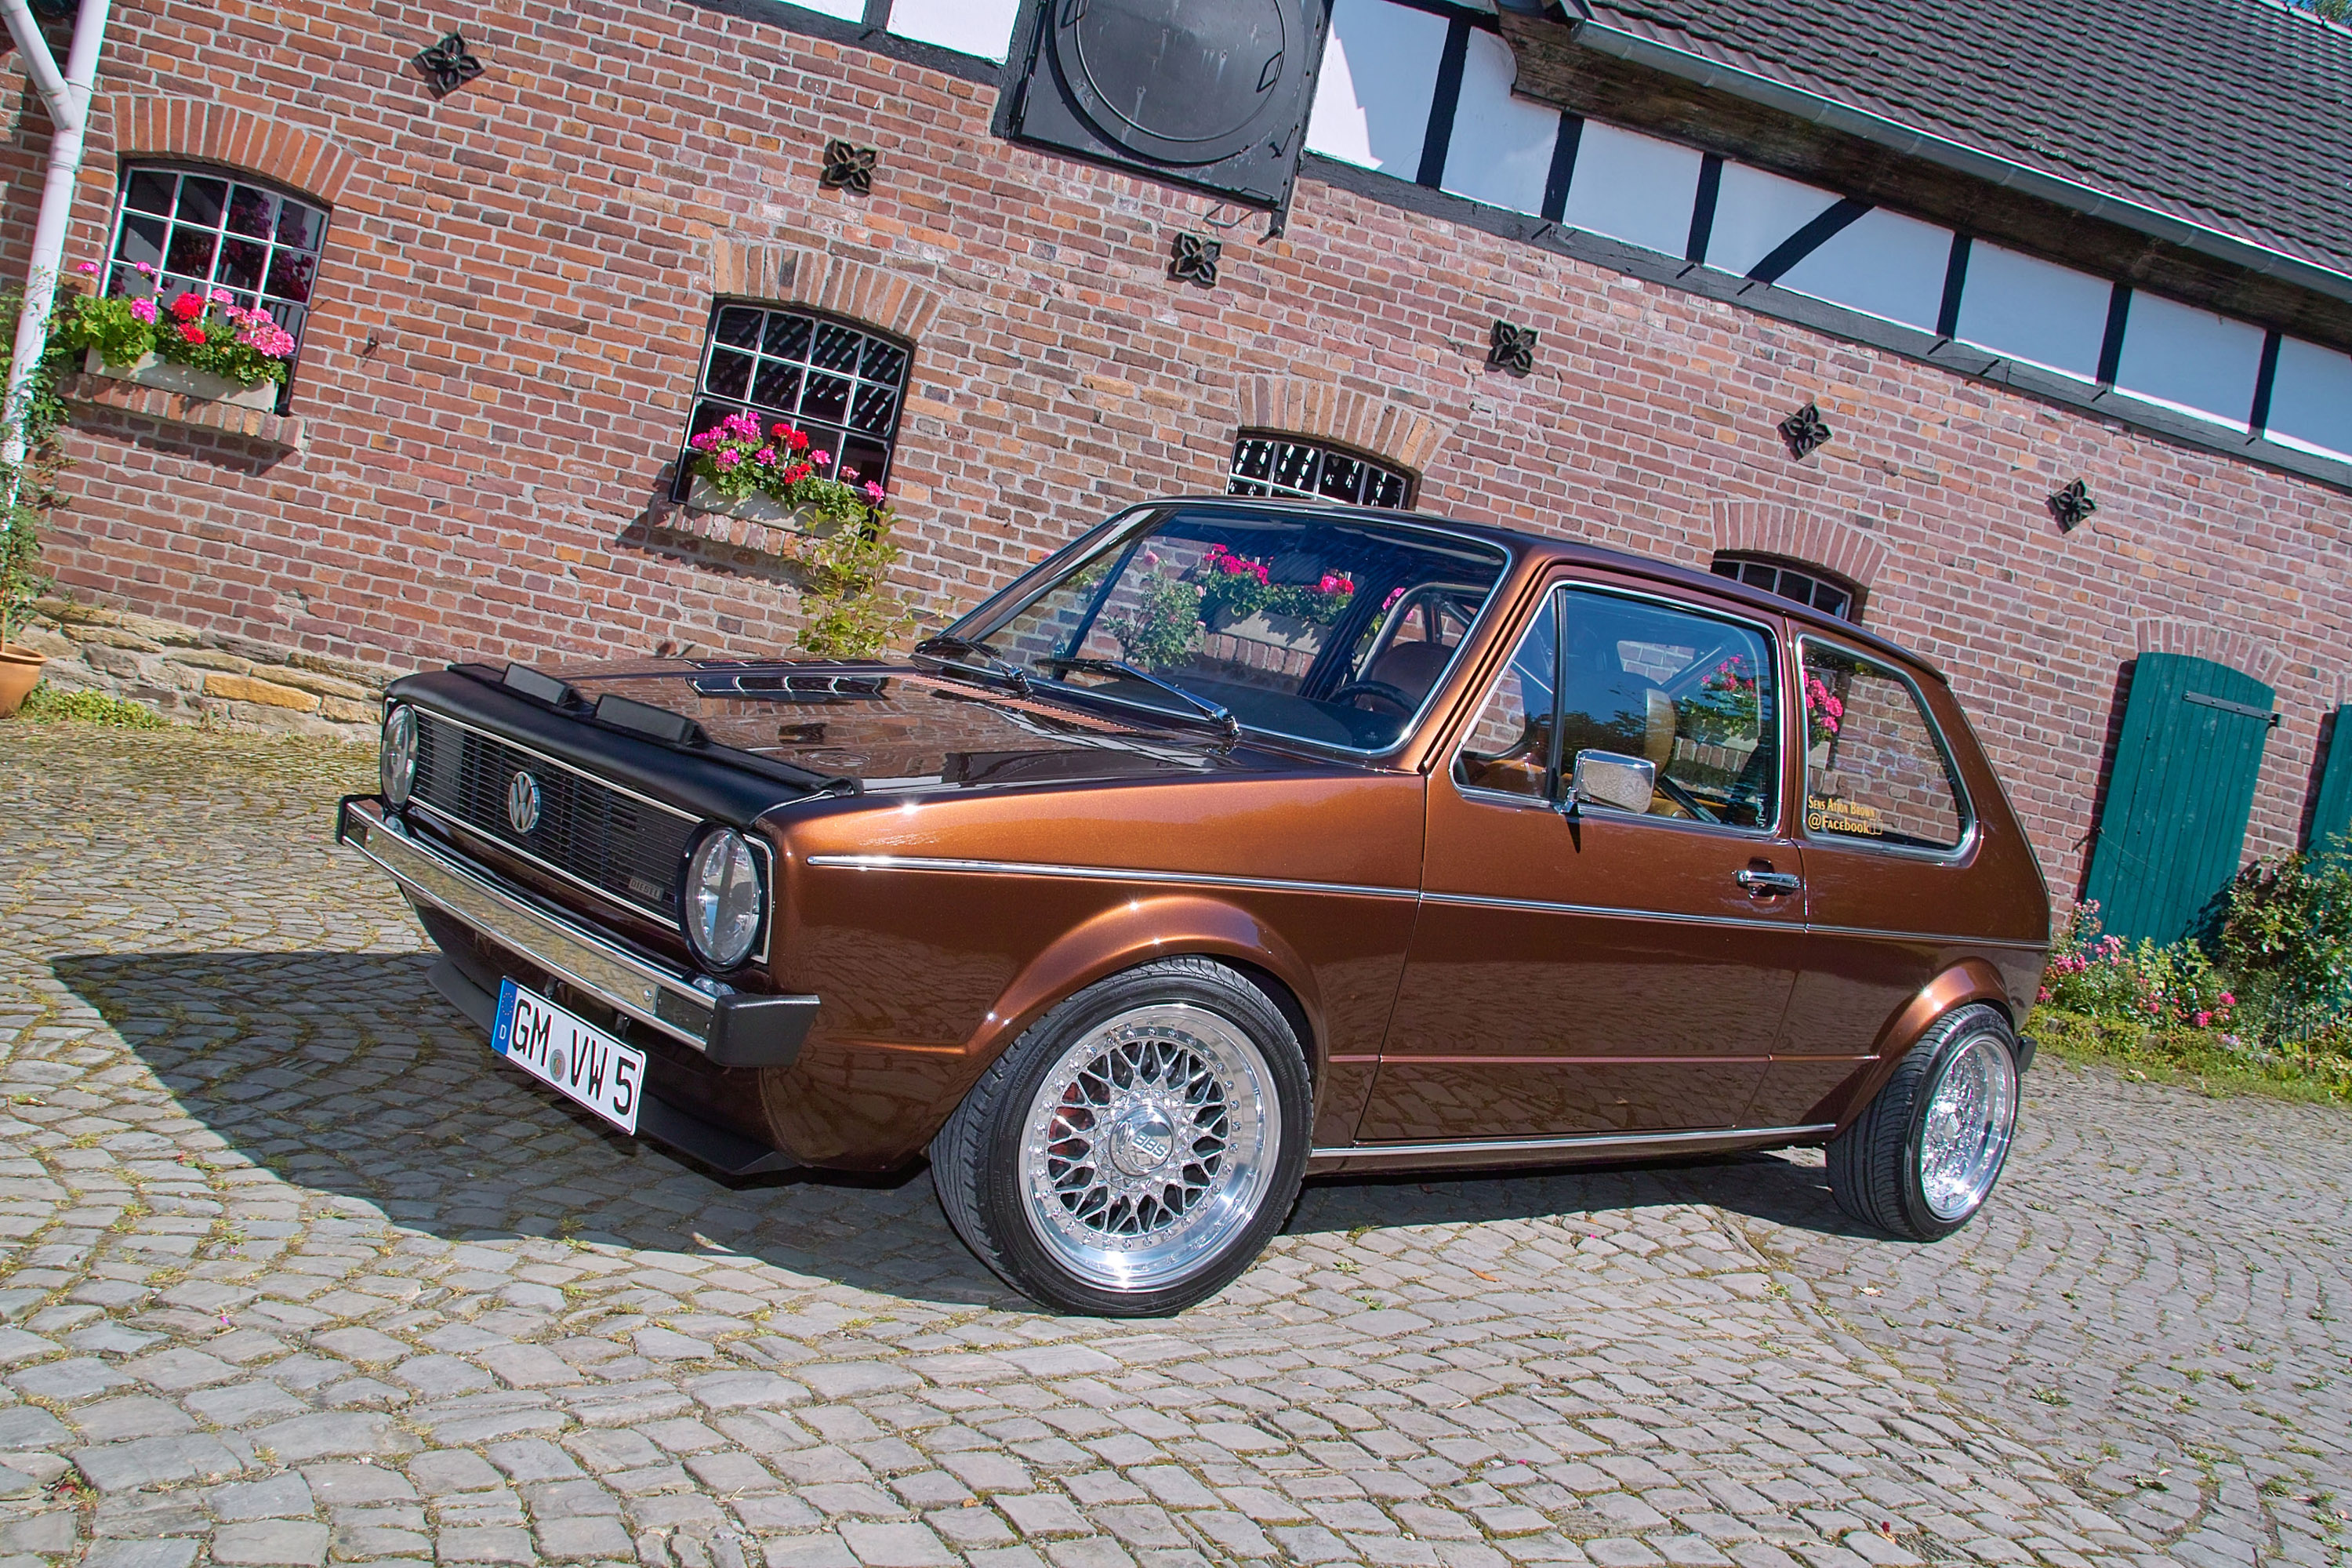 volkswagen golf  chocolate brown  car   special kind